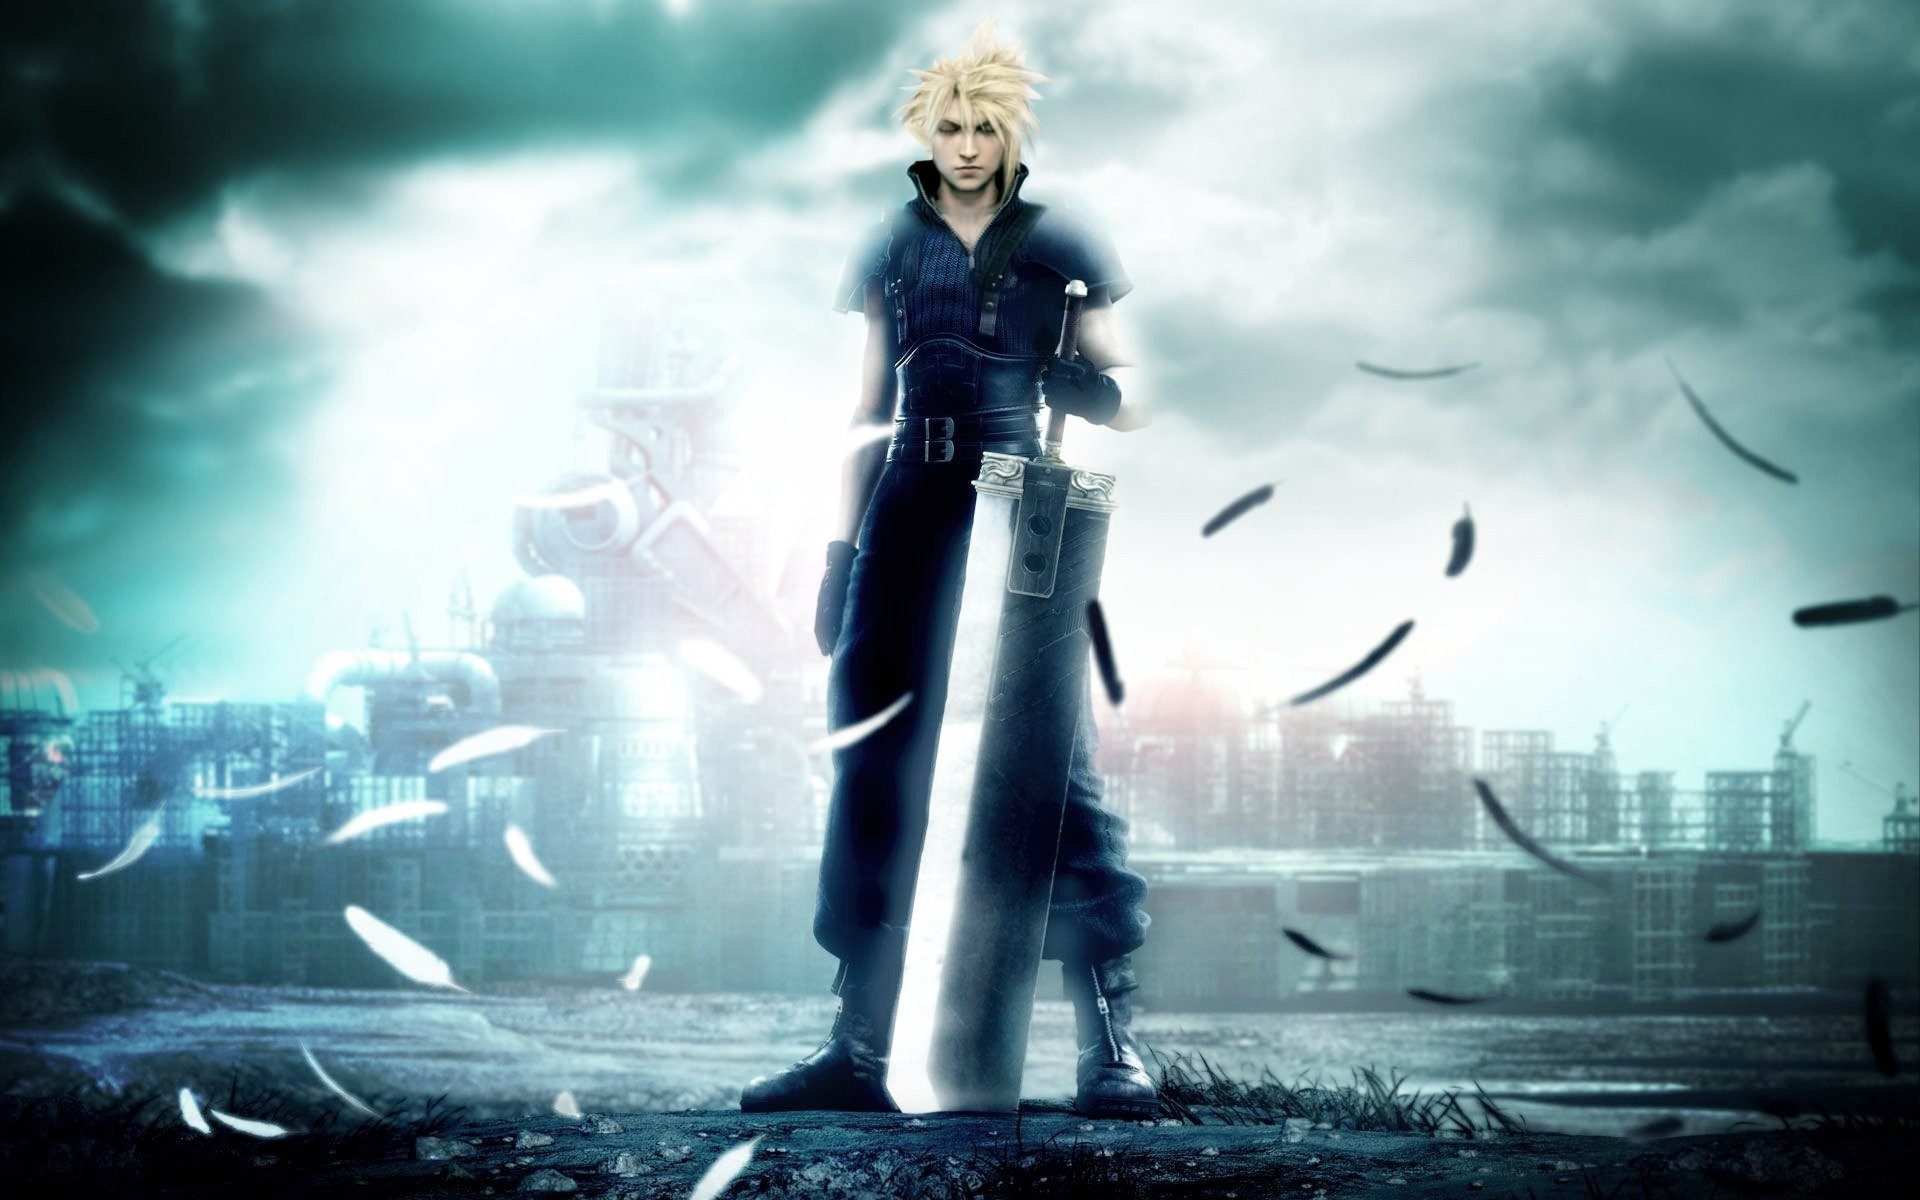 Square Enix Final Fantasy Vii Remake And Kingdom Hearts 3 To Release In 3 Years Or So Obilisk